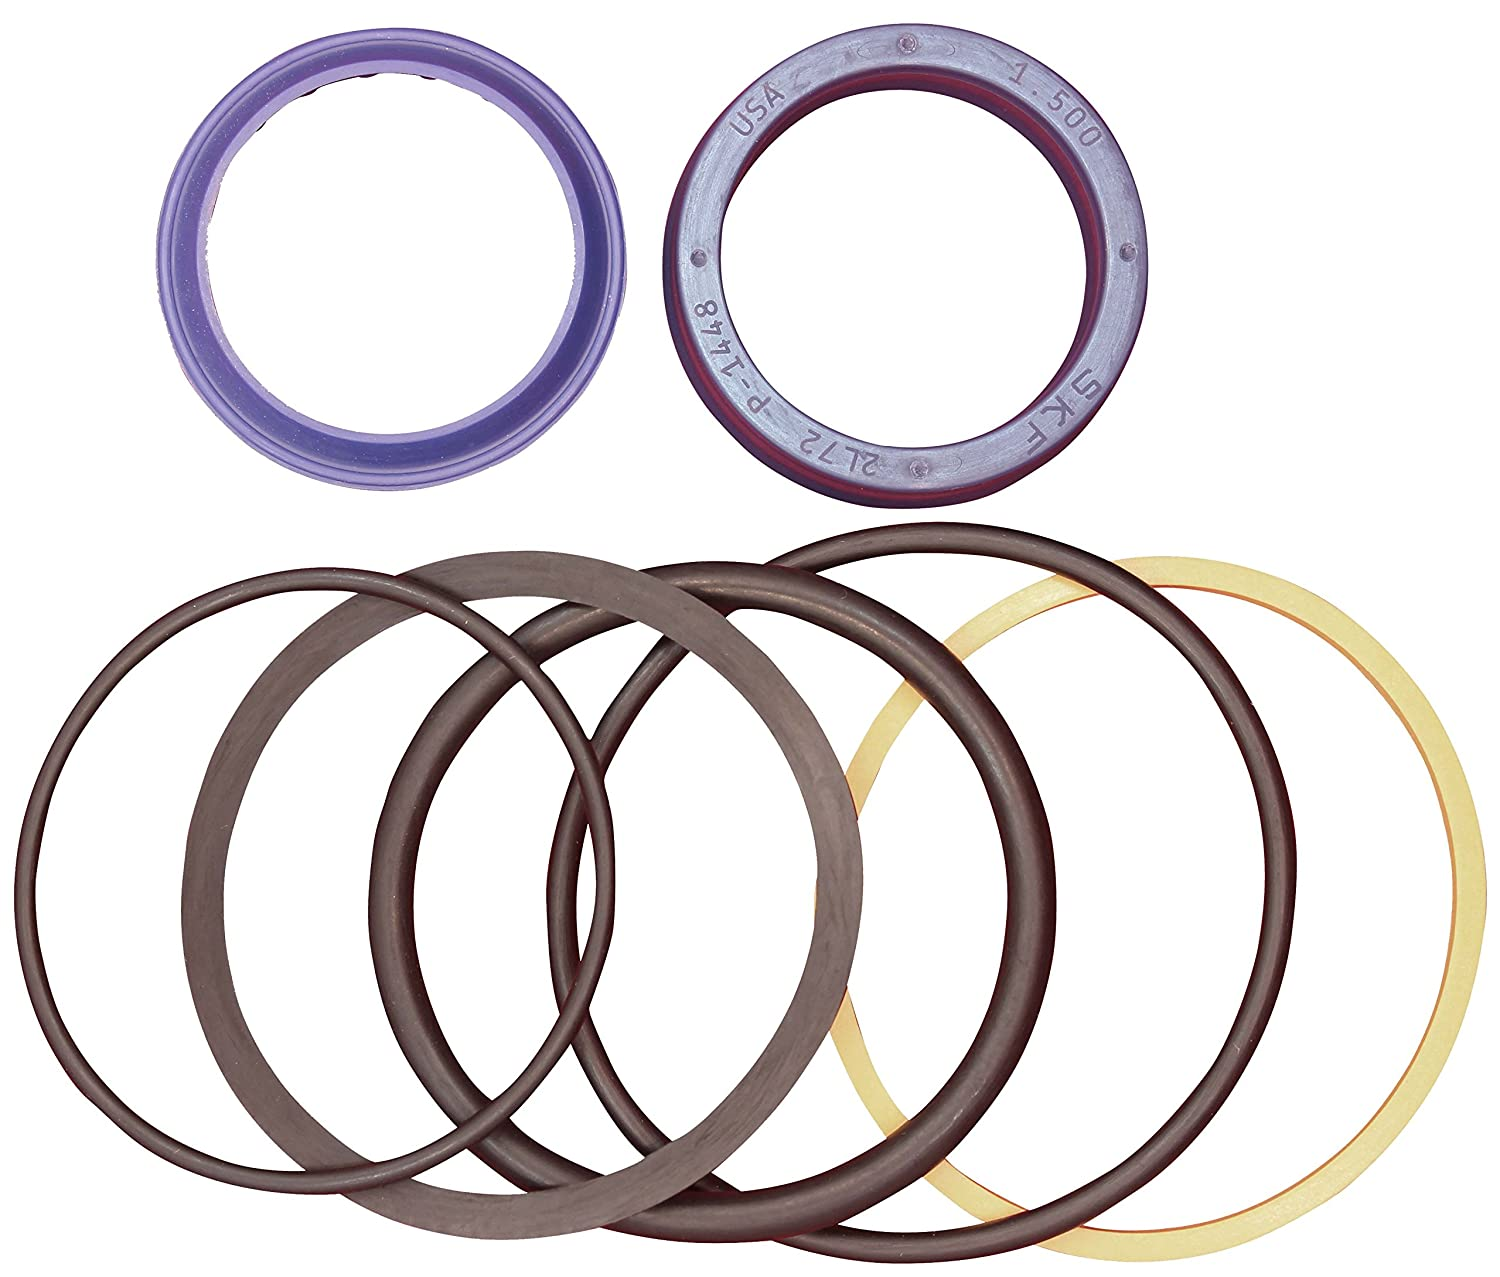 BOBCAT 6589796 HYDRAULIC CYLINDER SEAL KIT X225 X 325 2400 2410 TORNADO HEAVY EQUIPMENT PARTS